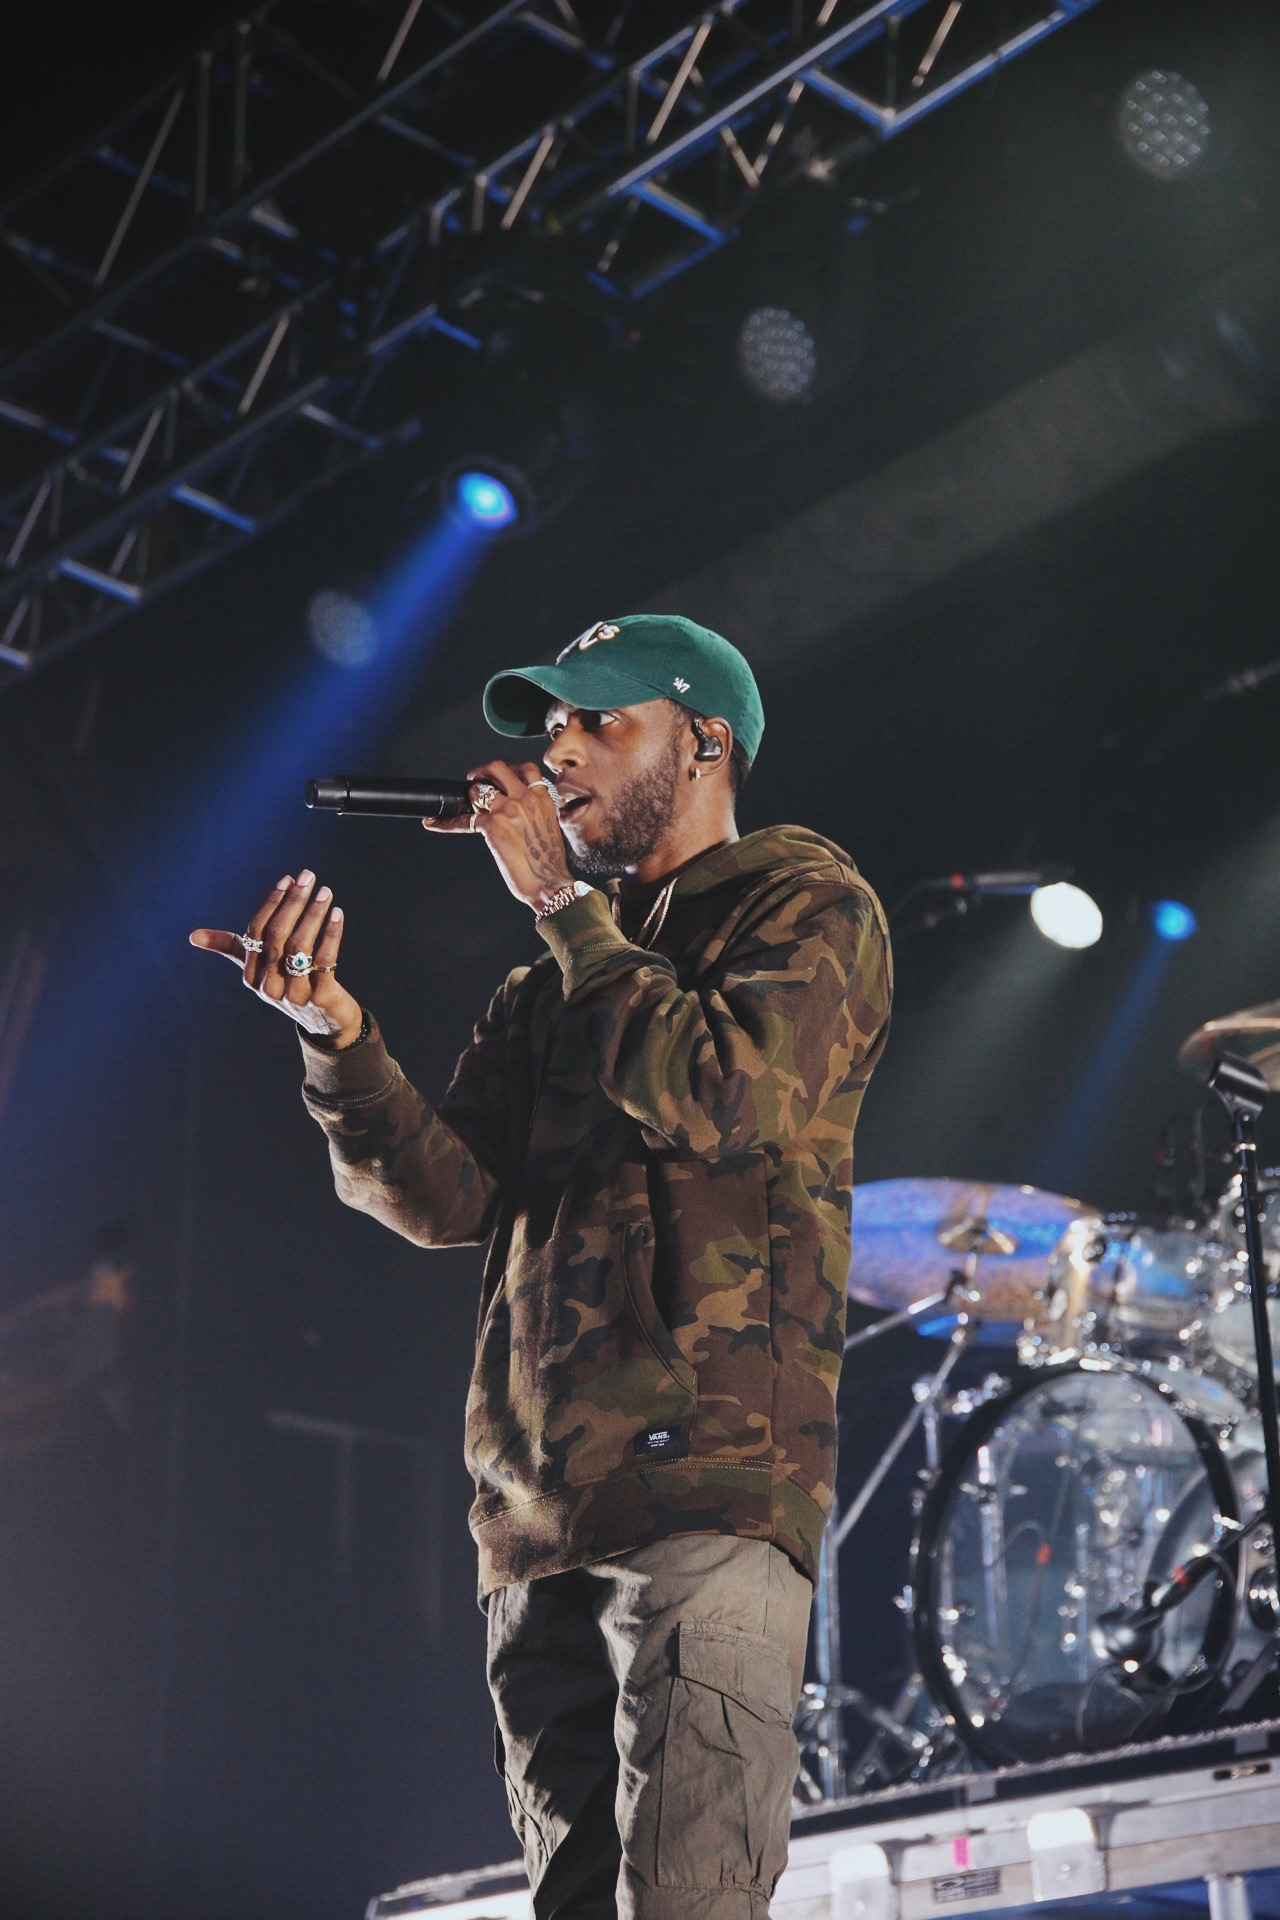 6lack in phoenix, arizona in december 2018 - 2